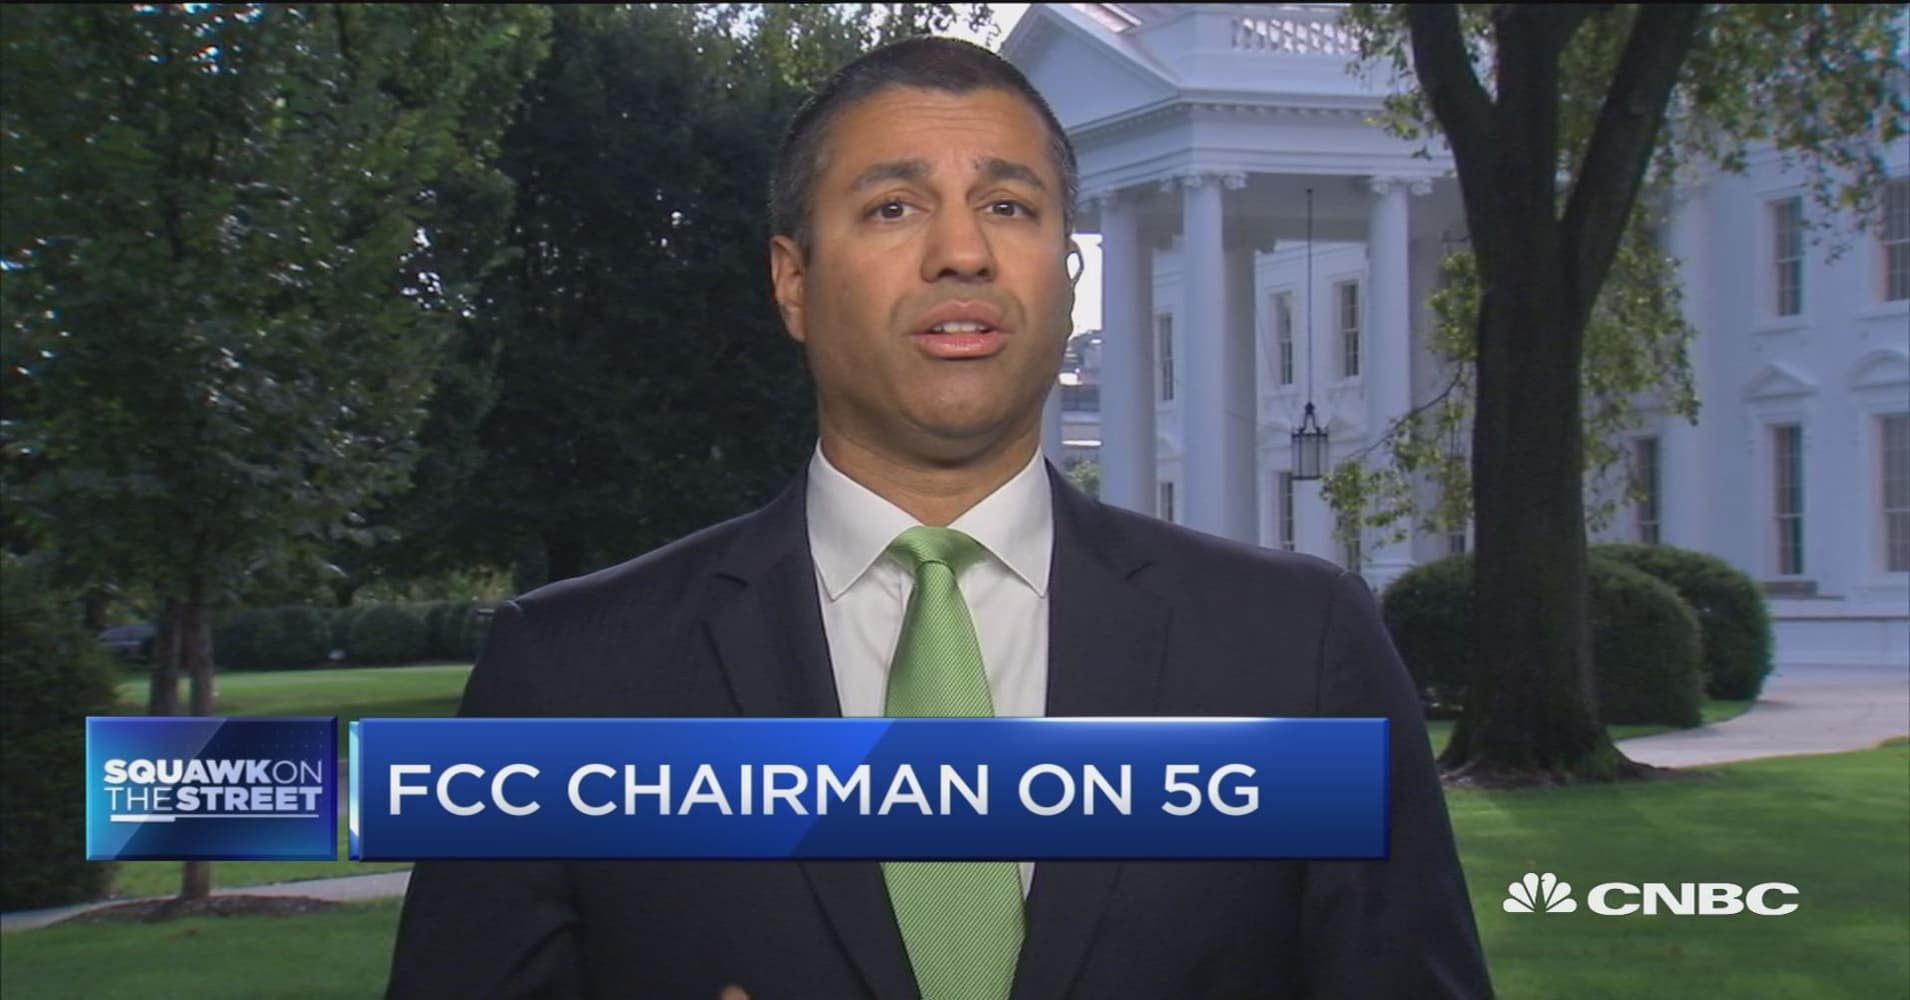 FCC chair says regulations, not tariffs, are biggest barrier to 5G